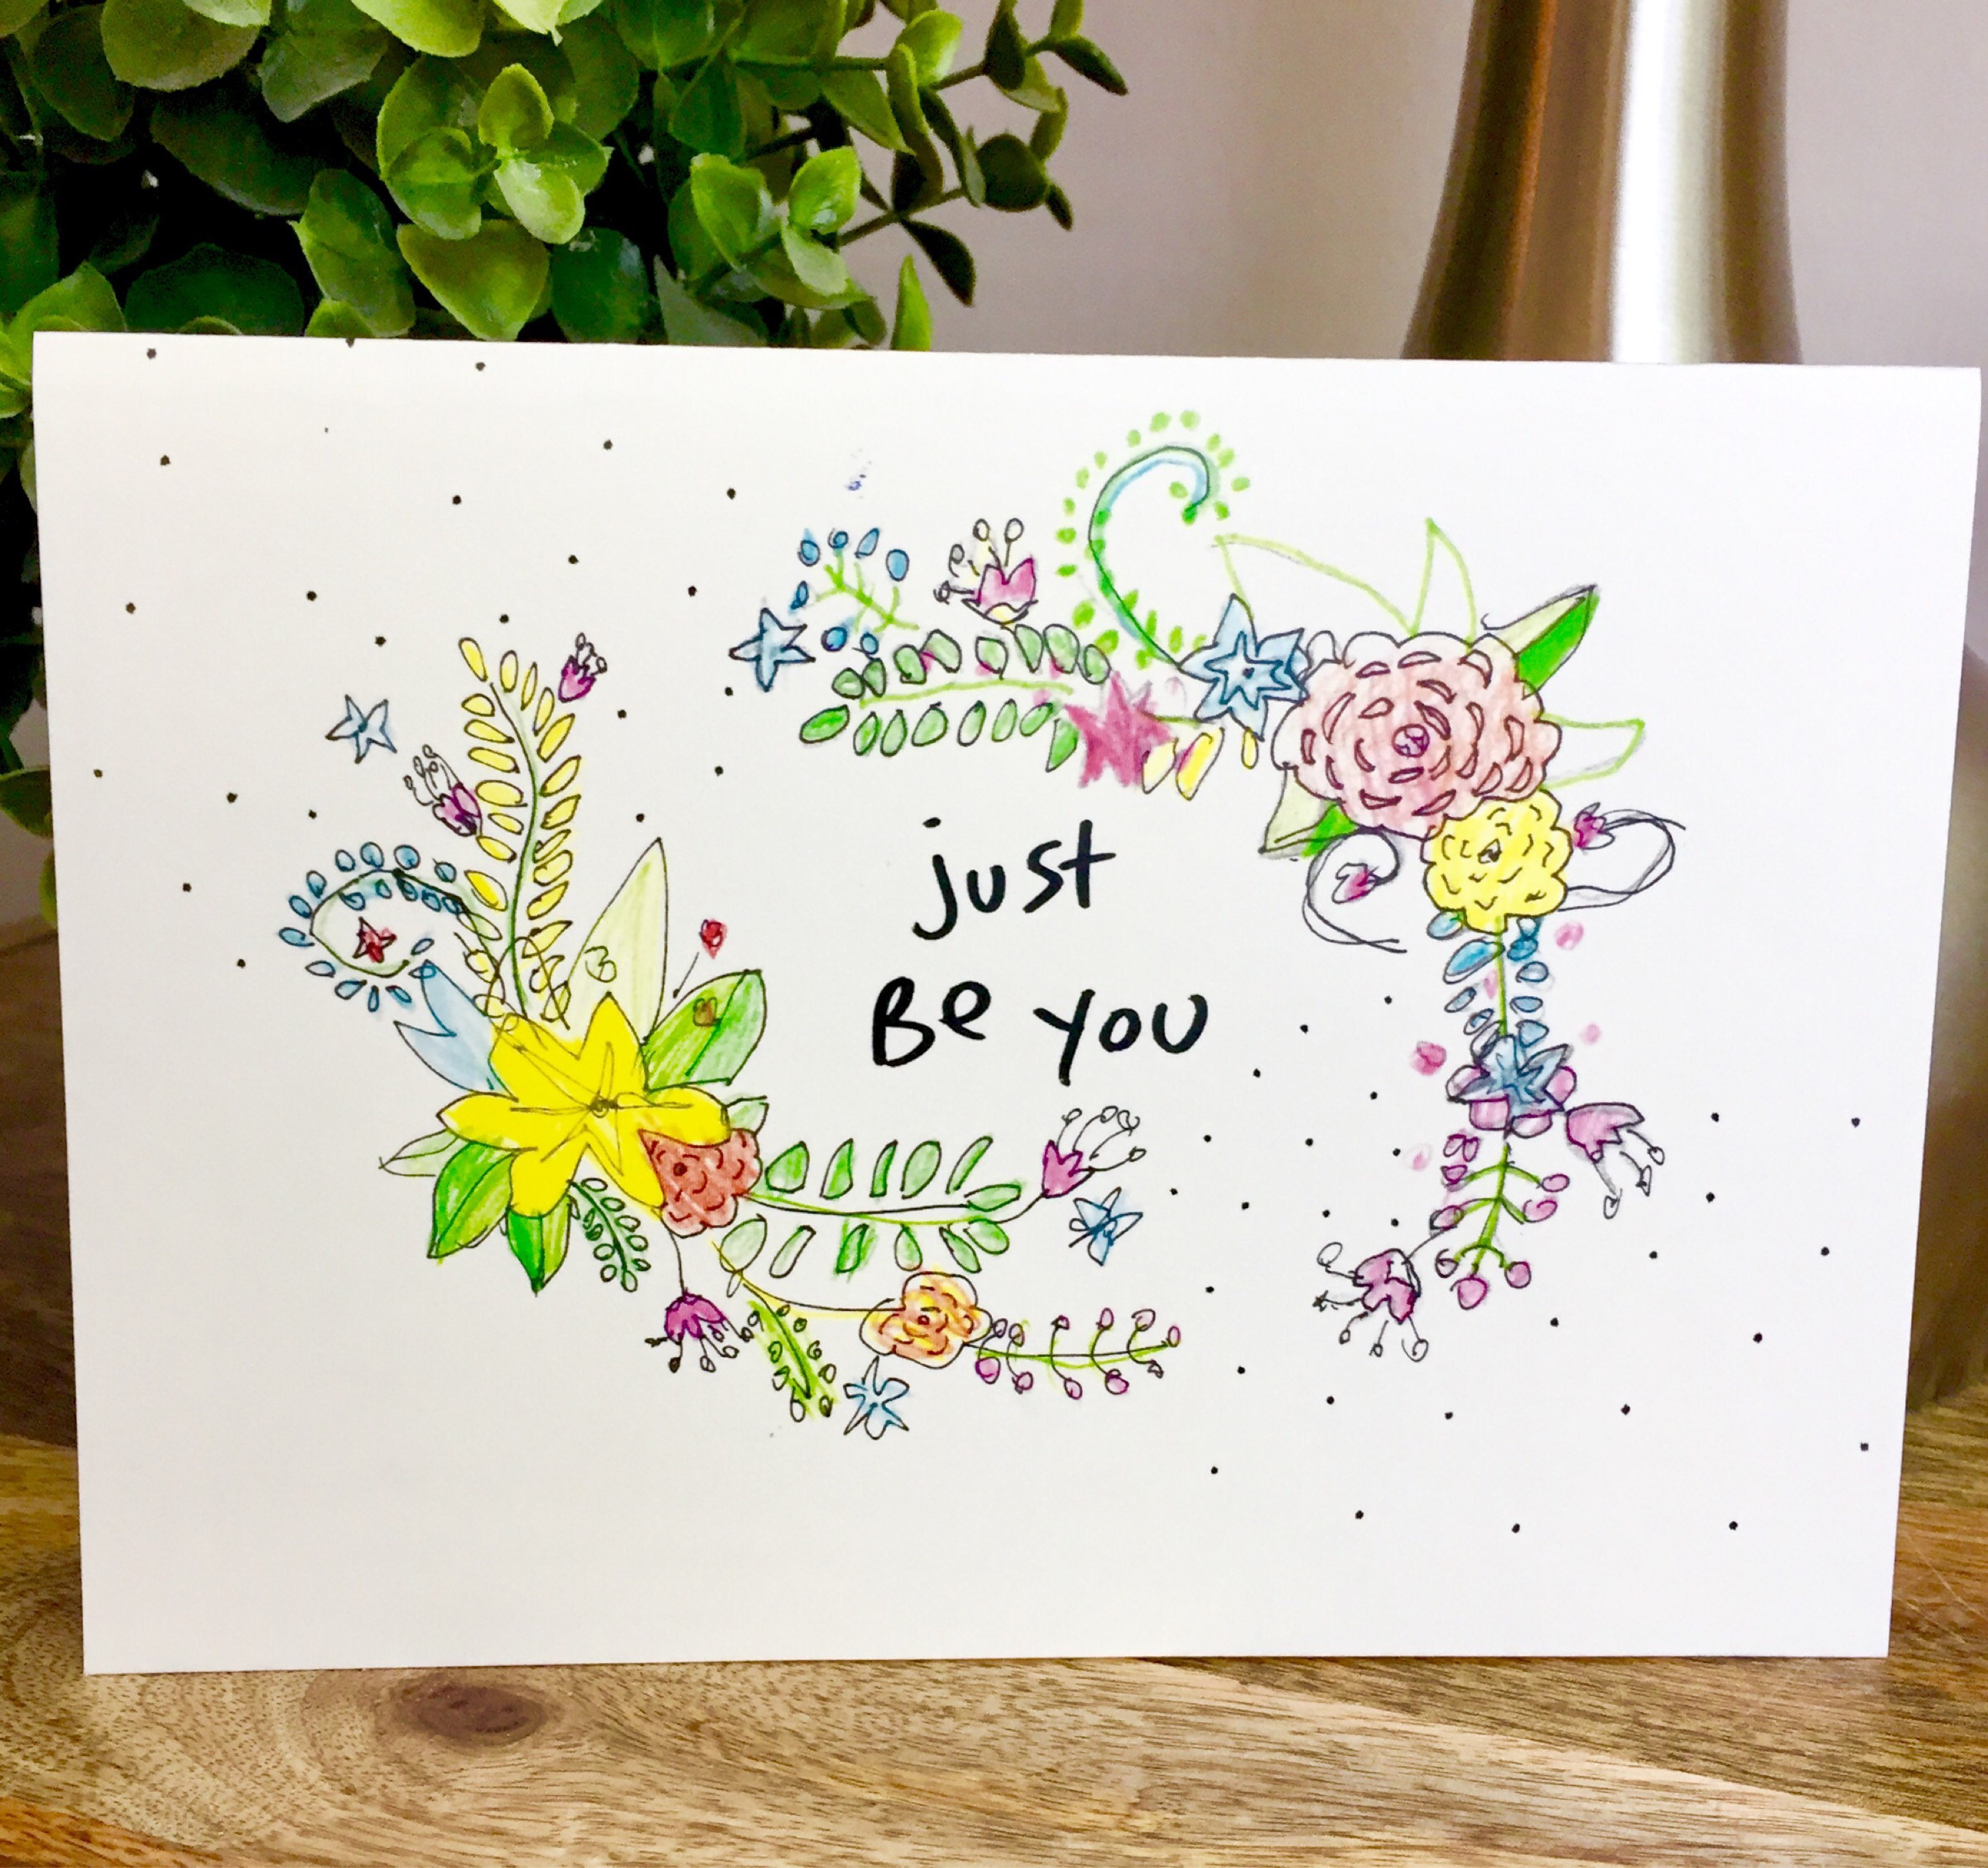 Bulk greeting cards 6 pack of cards positive hello card be bulk greeting cards 6 pack of cards positive hello card be yourself card just be you spectacular you encouragement card just be you m4hsunfo